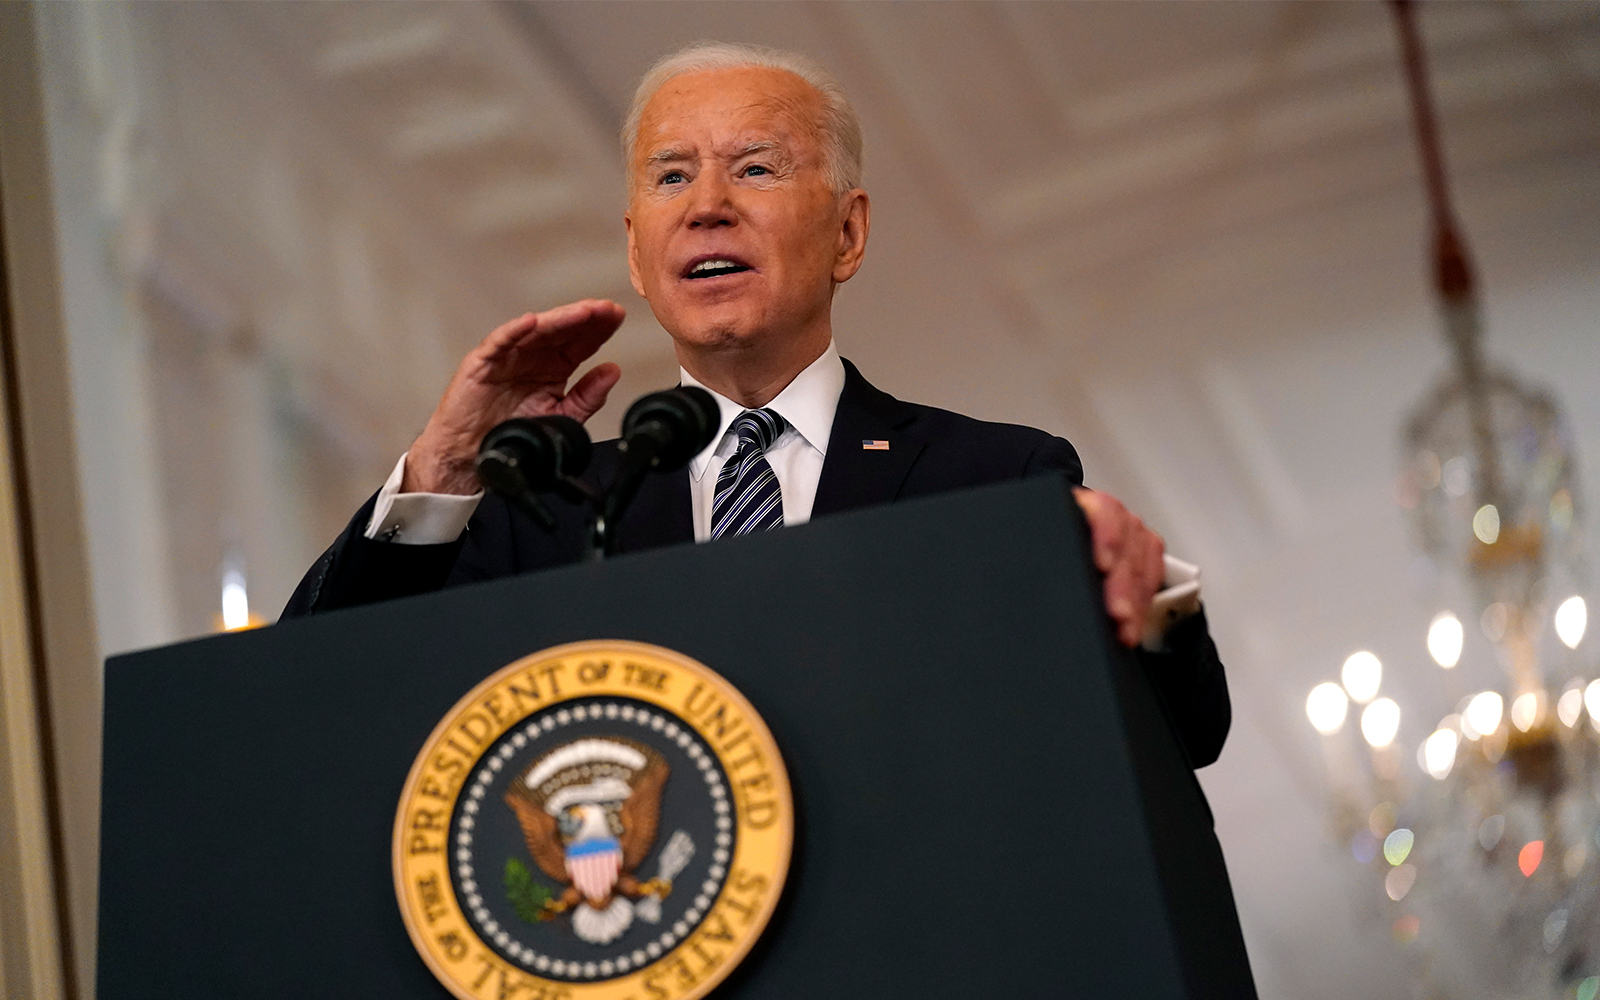 Biden calls for vaccine eligibility for all adults by May 1